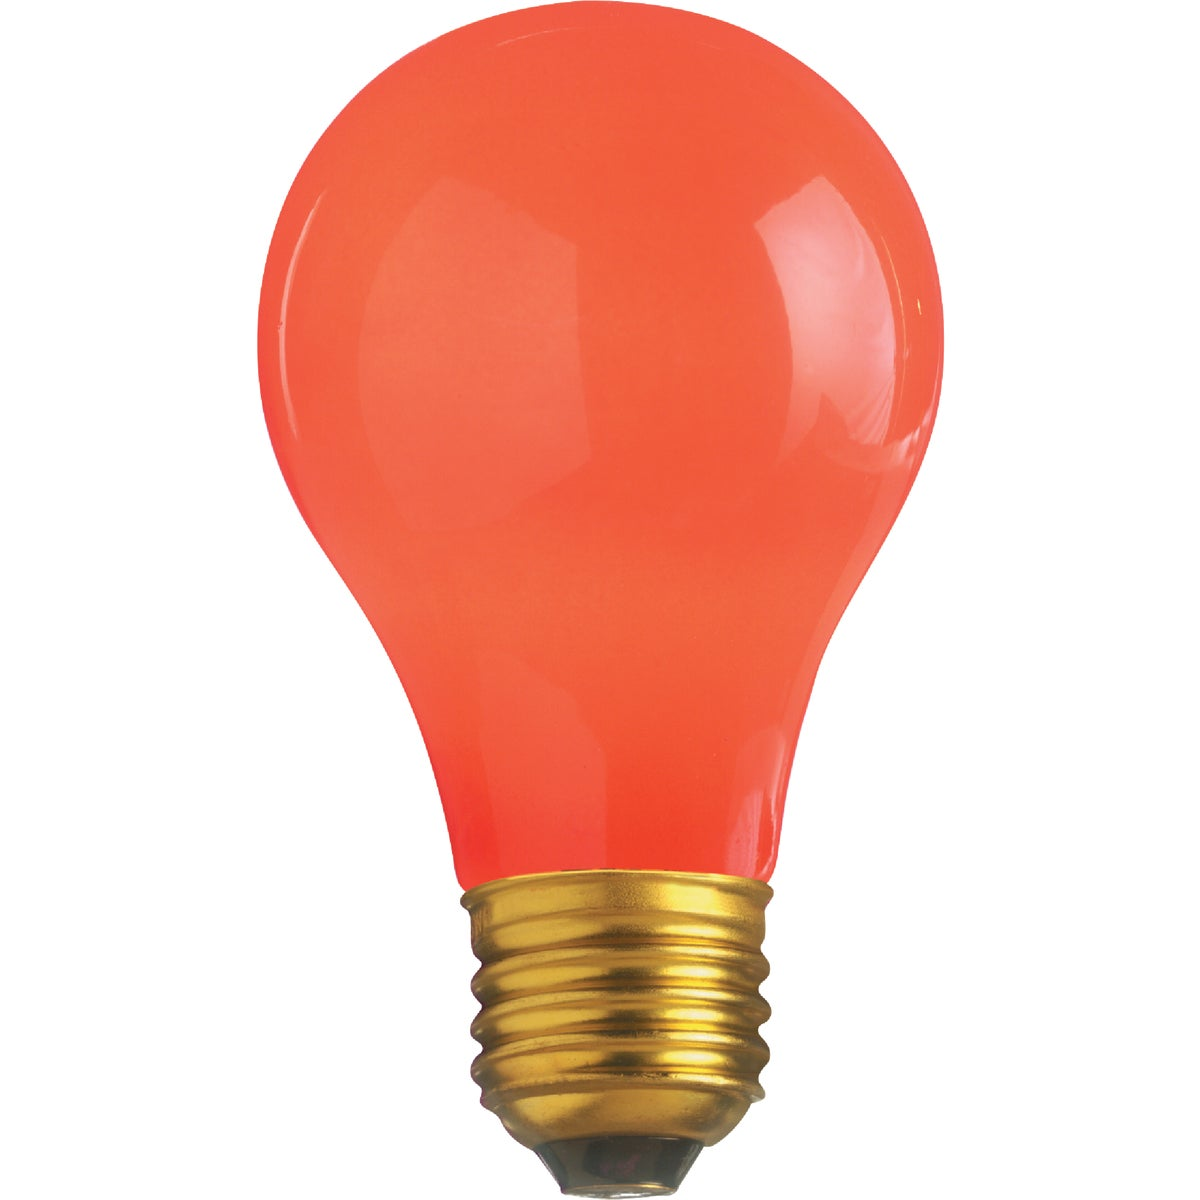 25W RED PARTY BULB - 49727 by G E Lighting